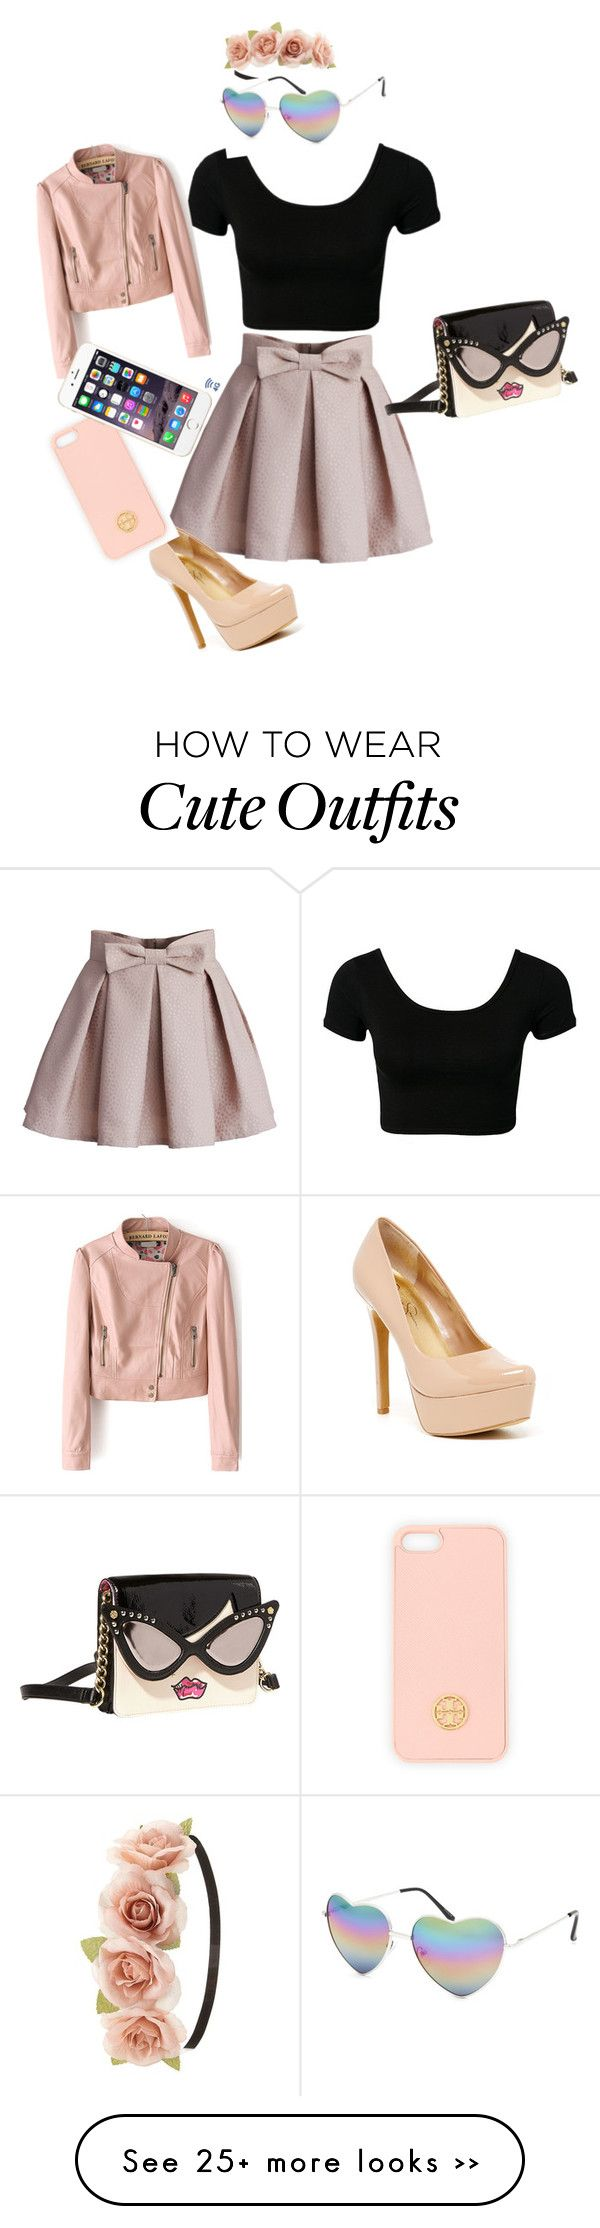 """Cute outfit"" by koraljackson on Polyvore"